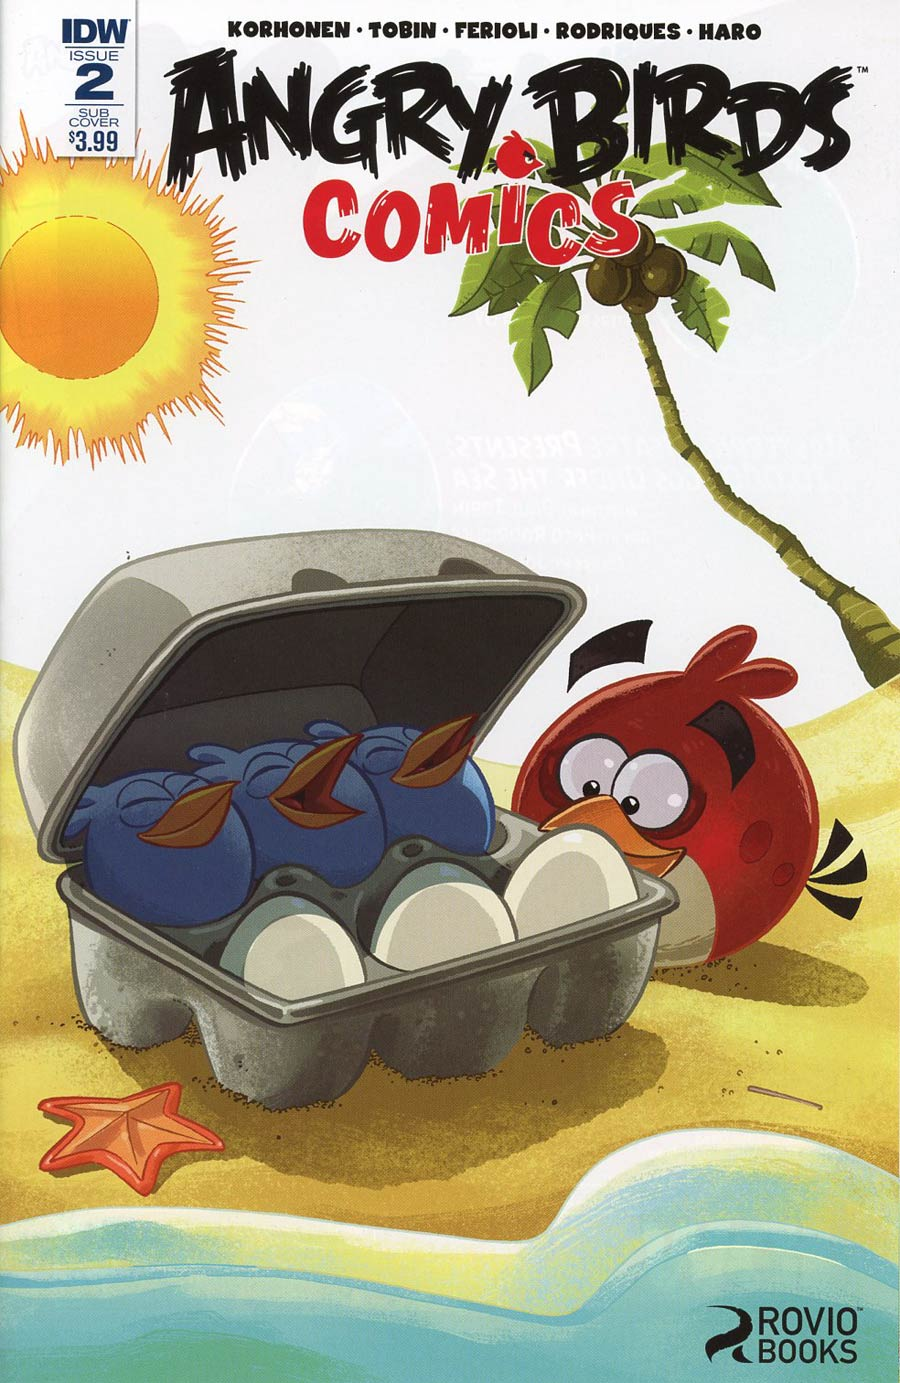 Angry Birds Comics Vol 2 #2 Cover B Variant Paco Rodriques Subscription Cover